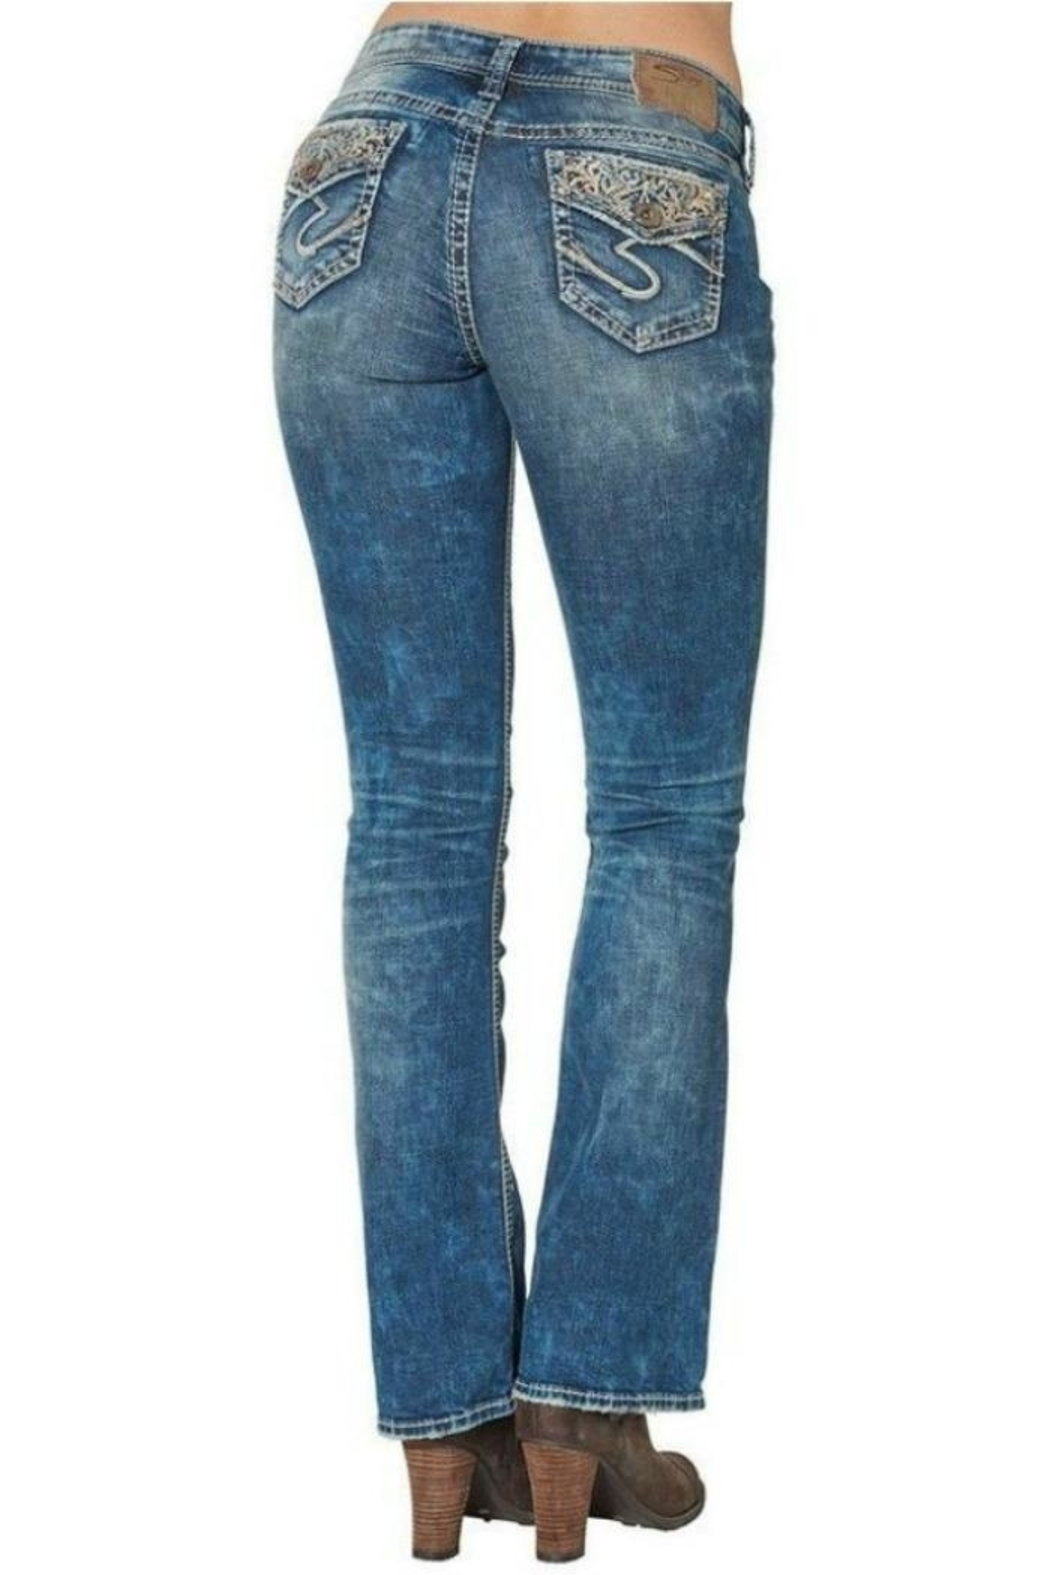 Silver Jeans Co. Boot Cut Jeans - Main Image